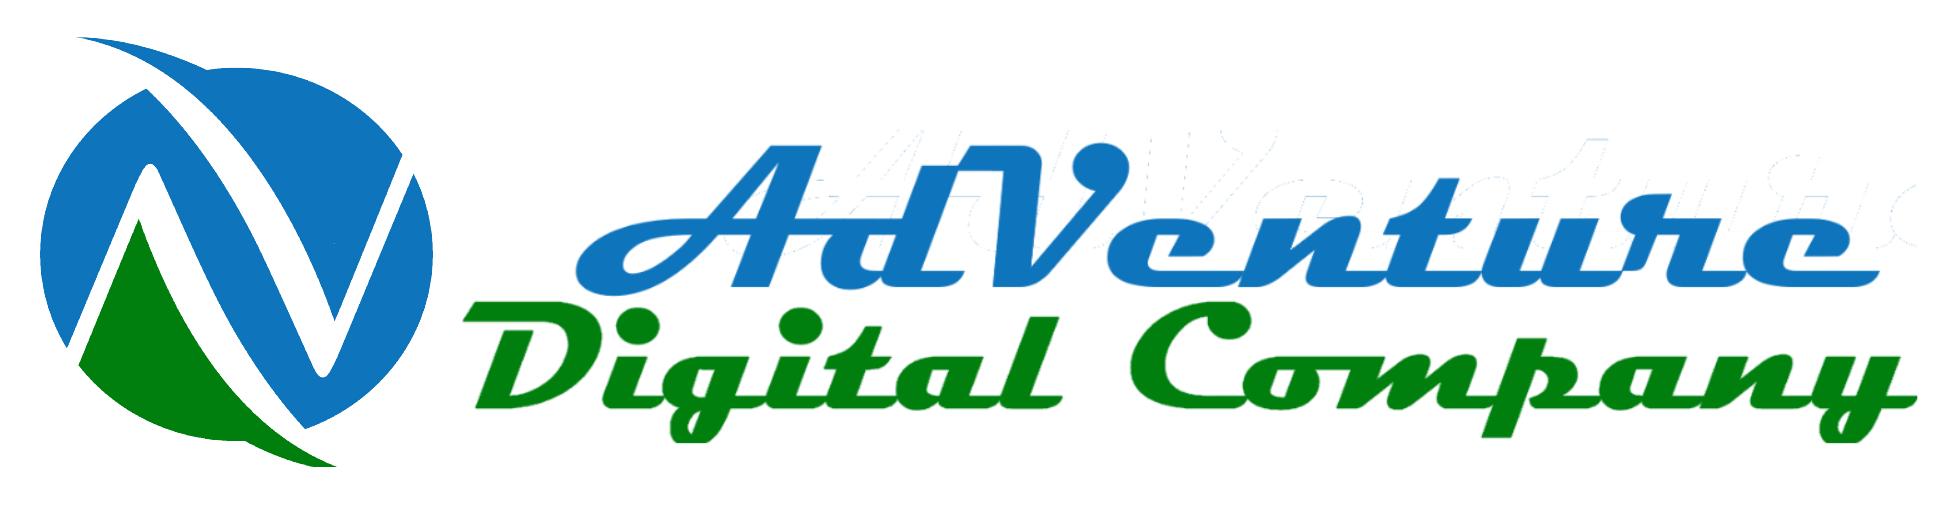 AdVenture Digital Company